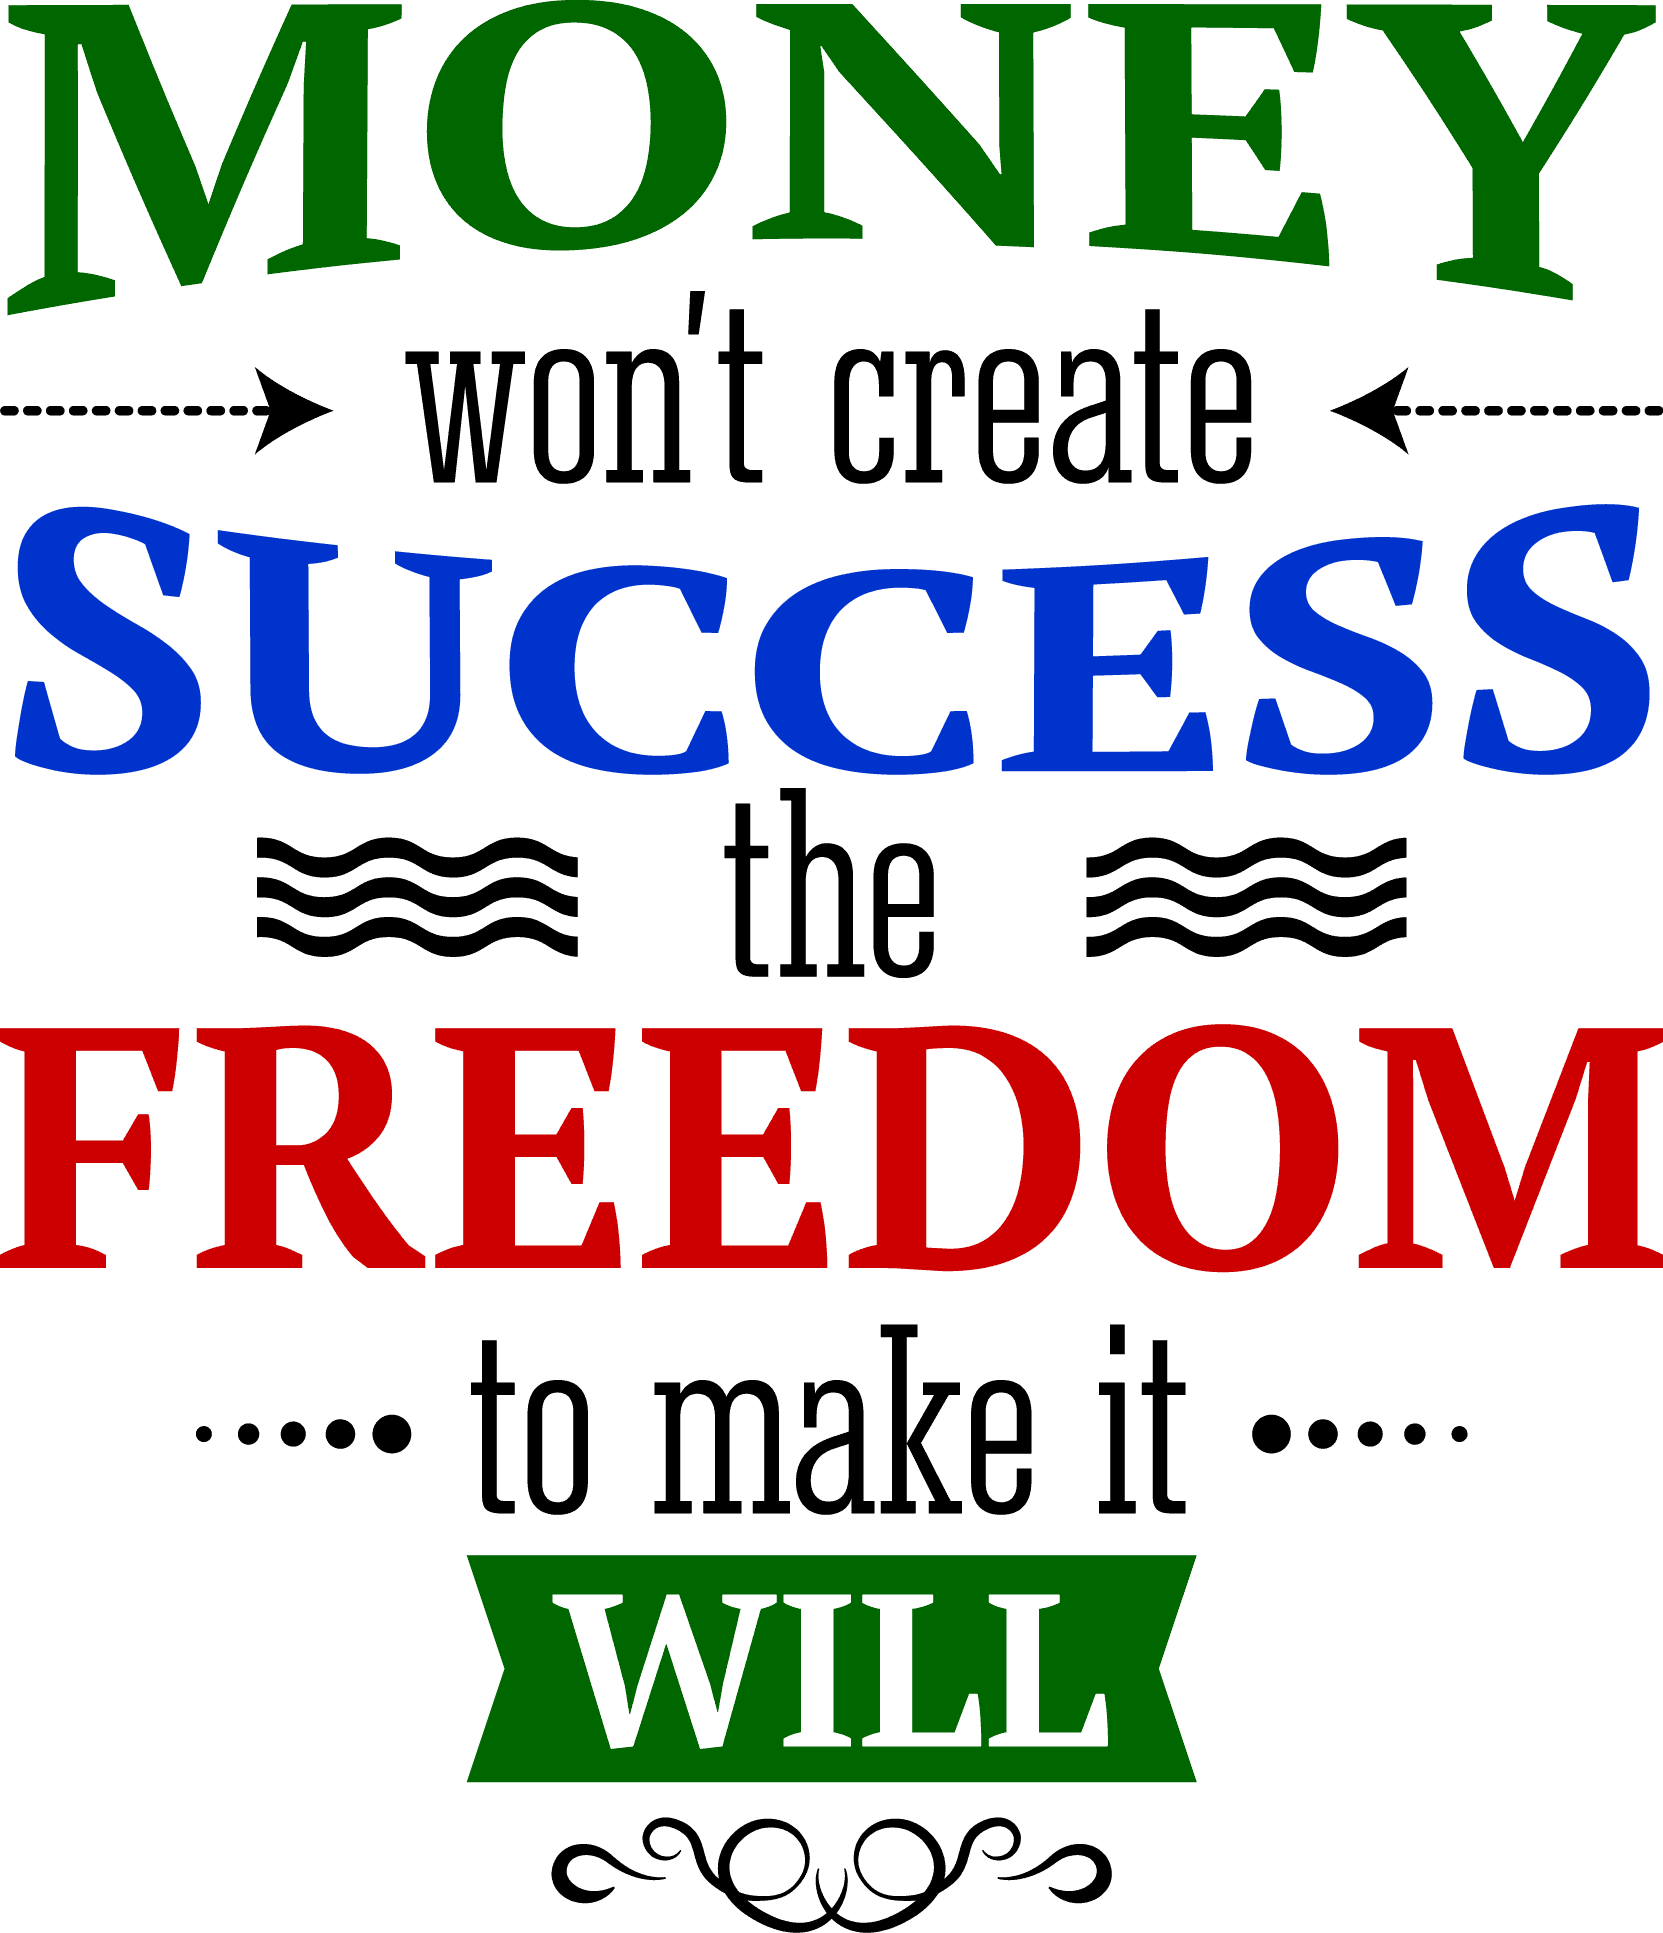 money won't create success, the freedom to make it will